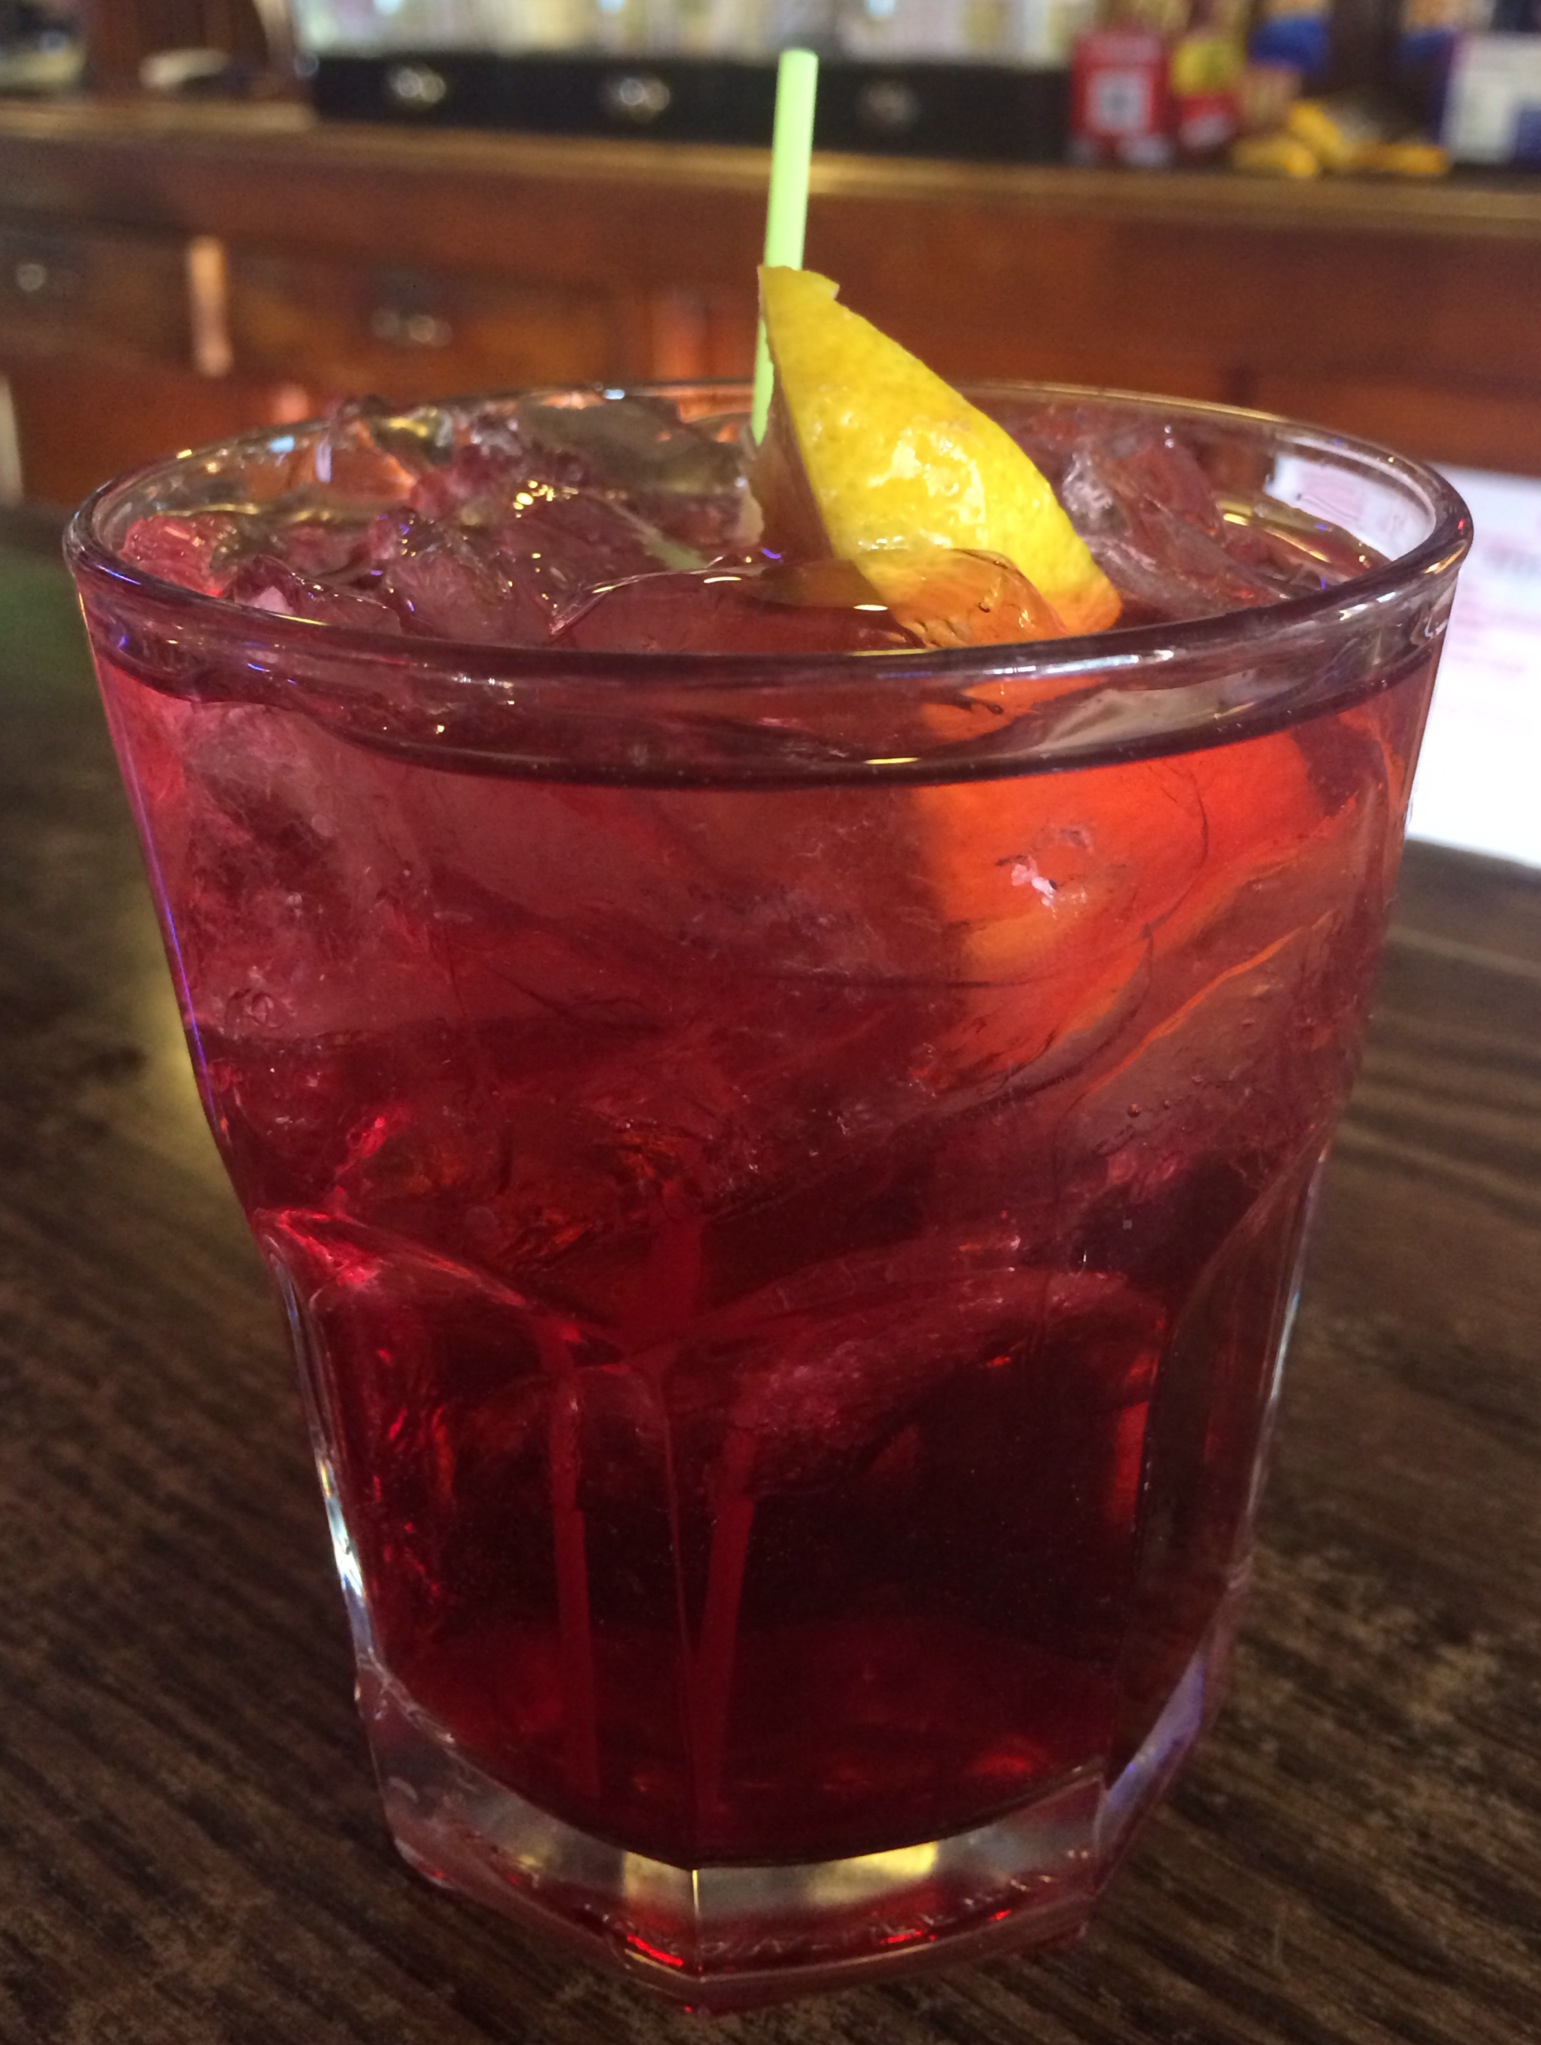 The Crimson Splash is featuredat local establishments in Waconia including  Chumley's ,  The Saloon , Hoppers, and Island View Dining.